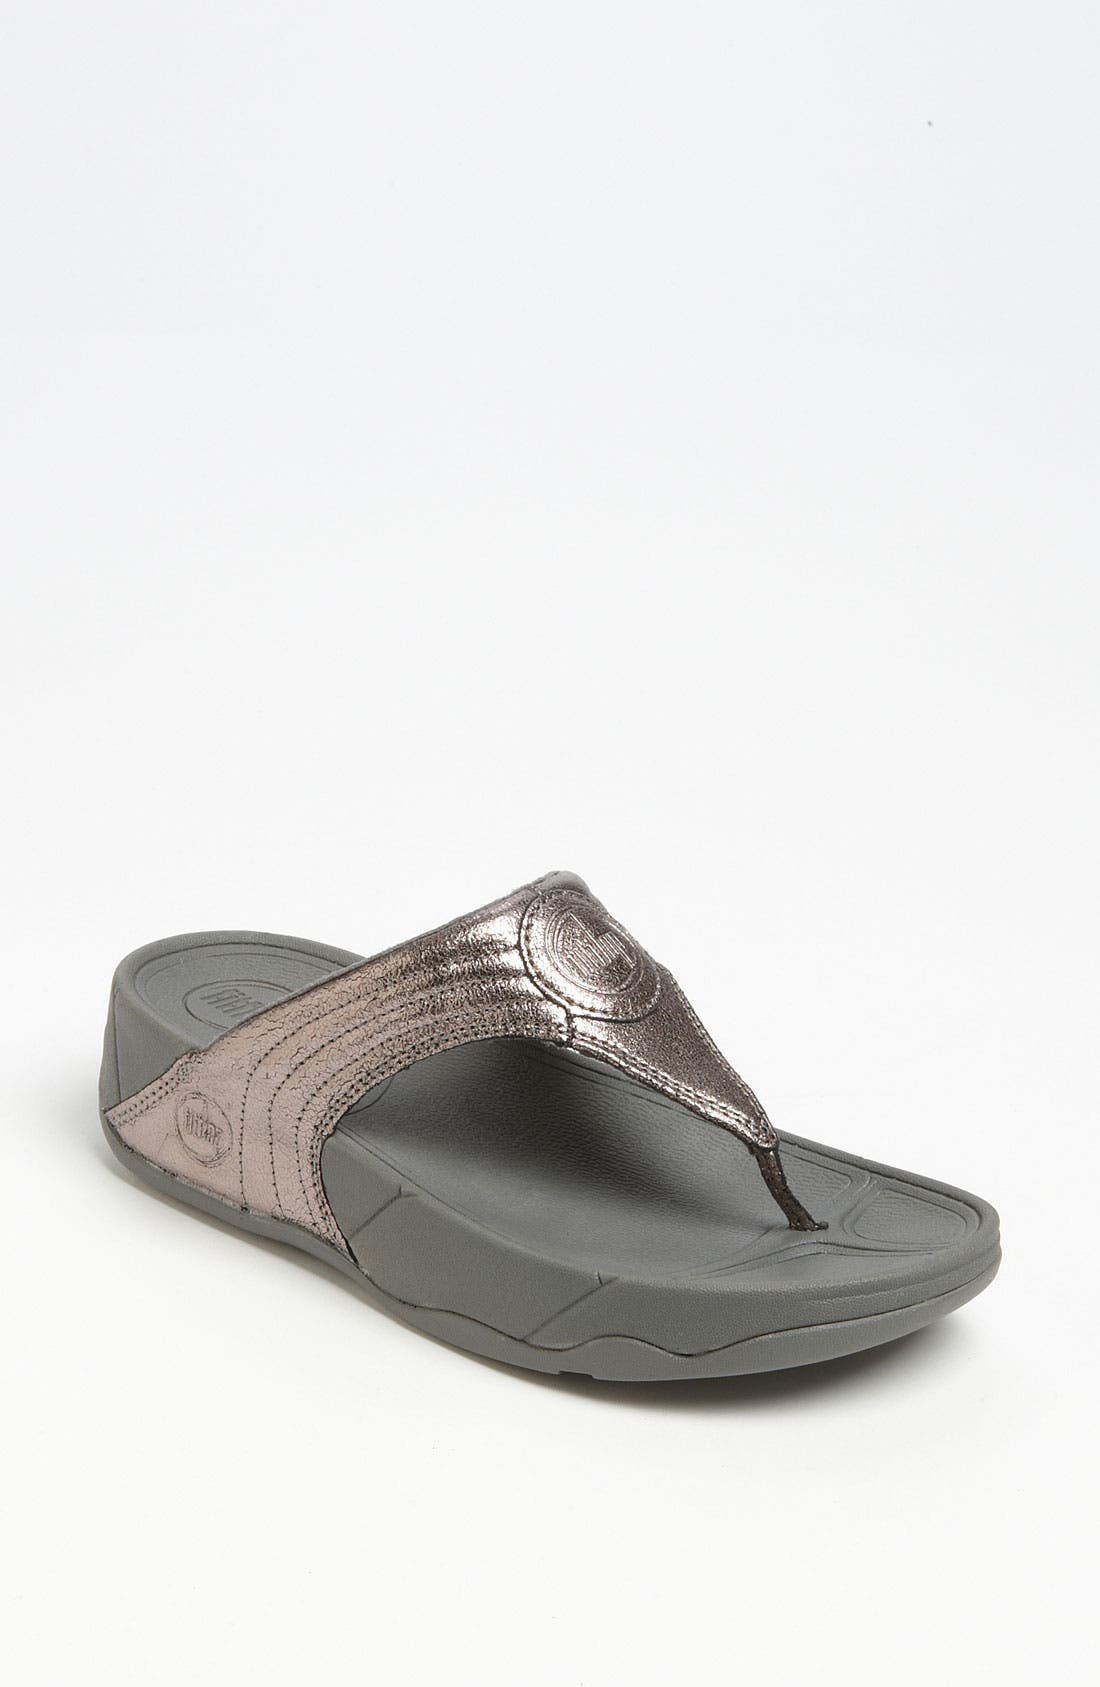 Alternate Image 1 Selected - FitFlop 'Walkstar 3' Sandal